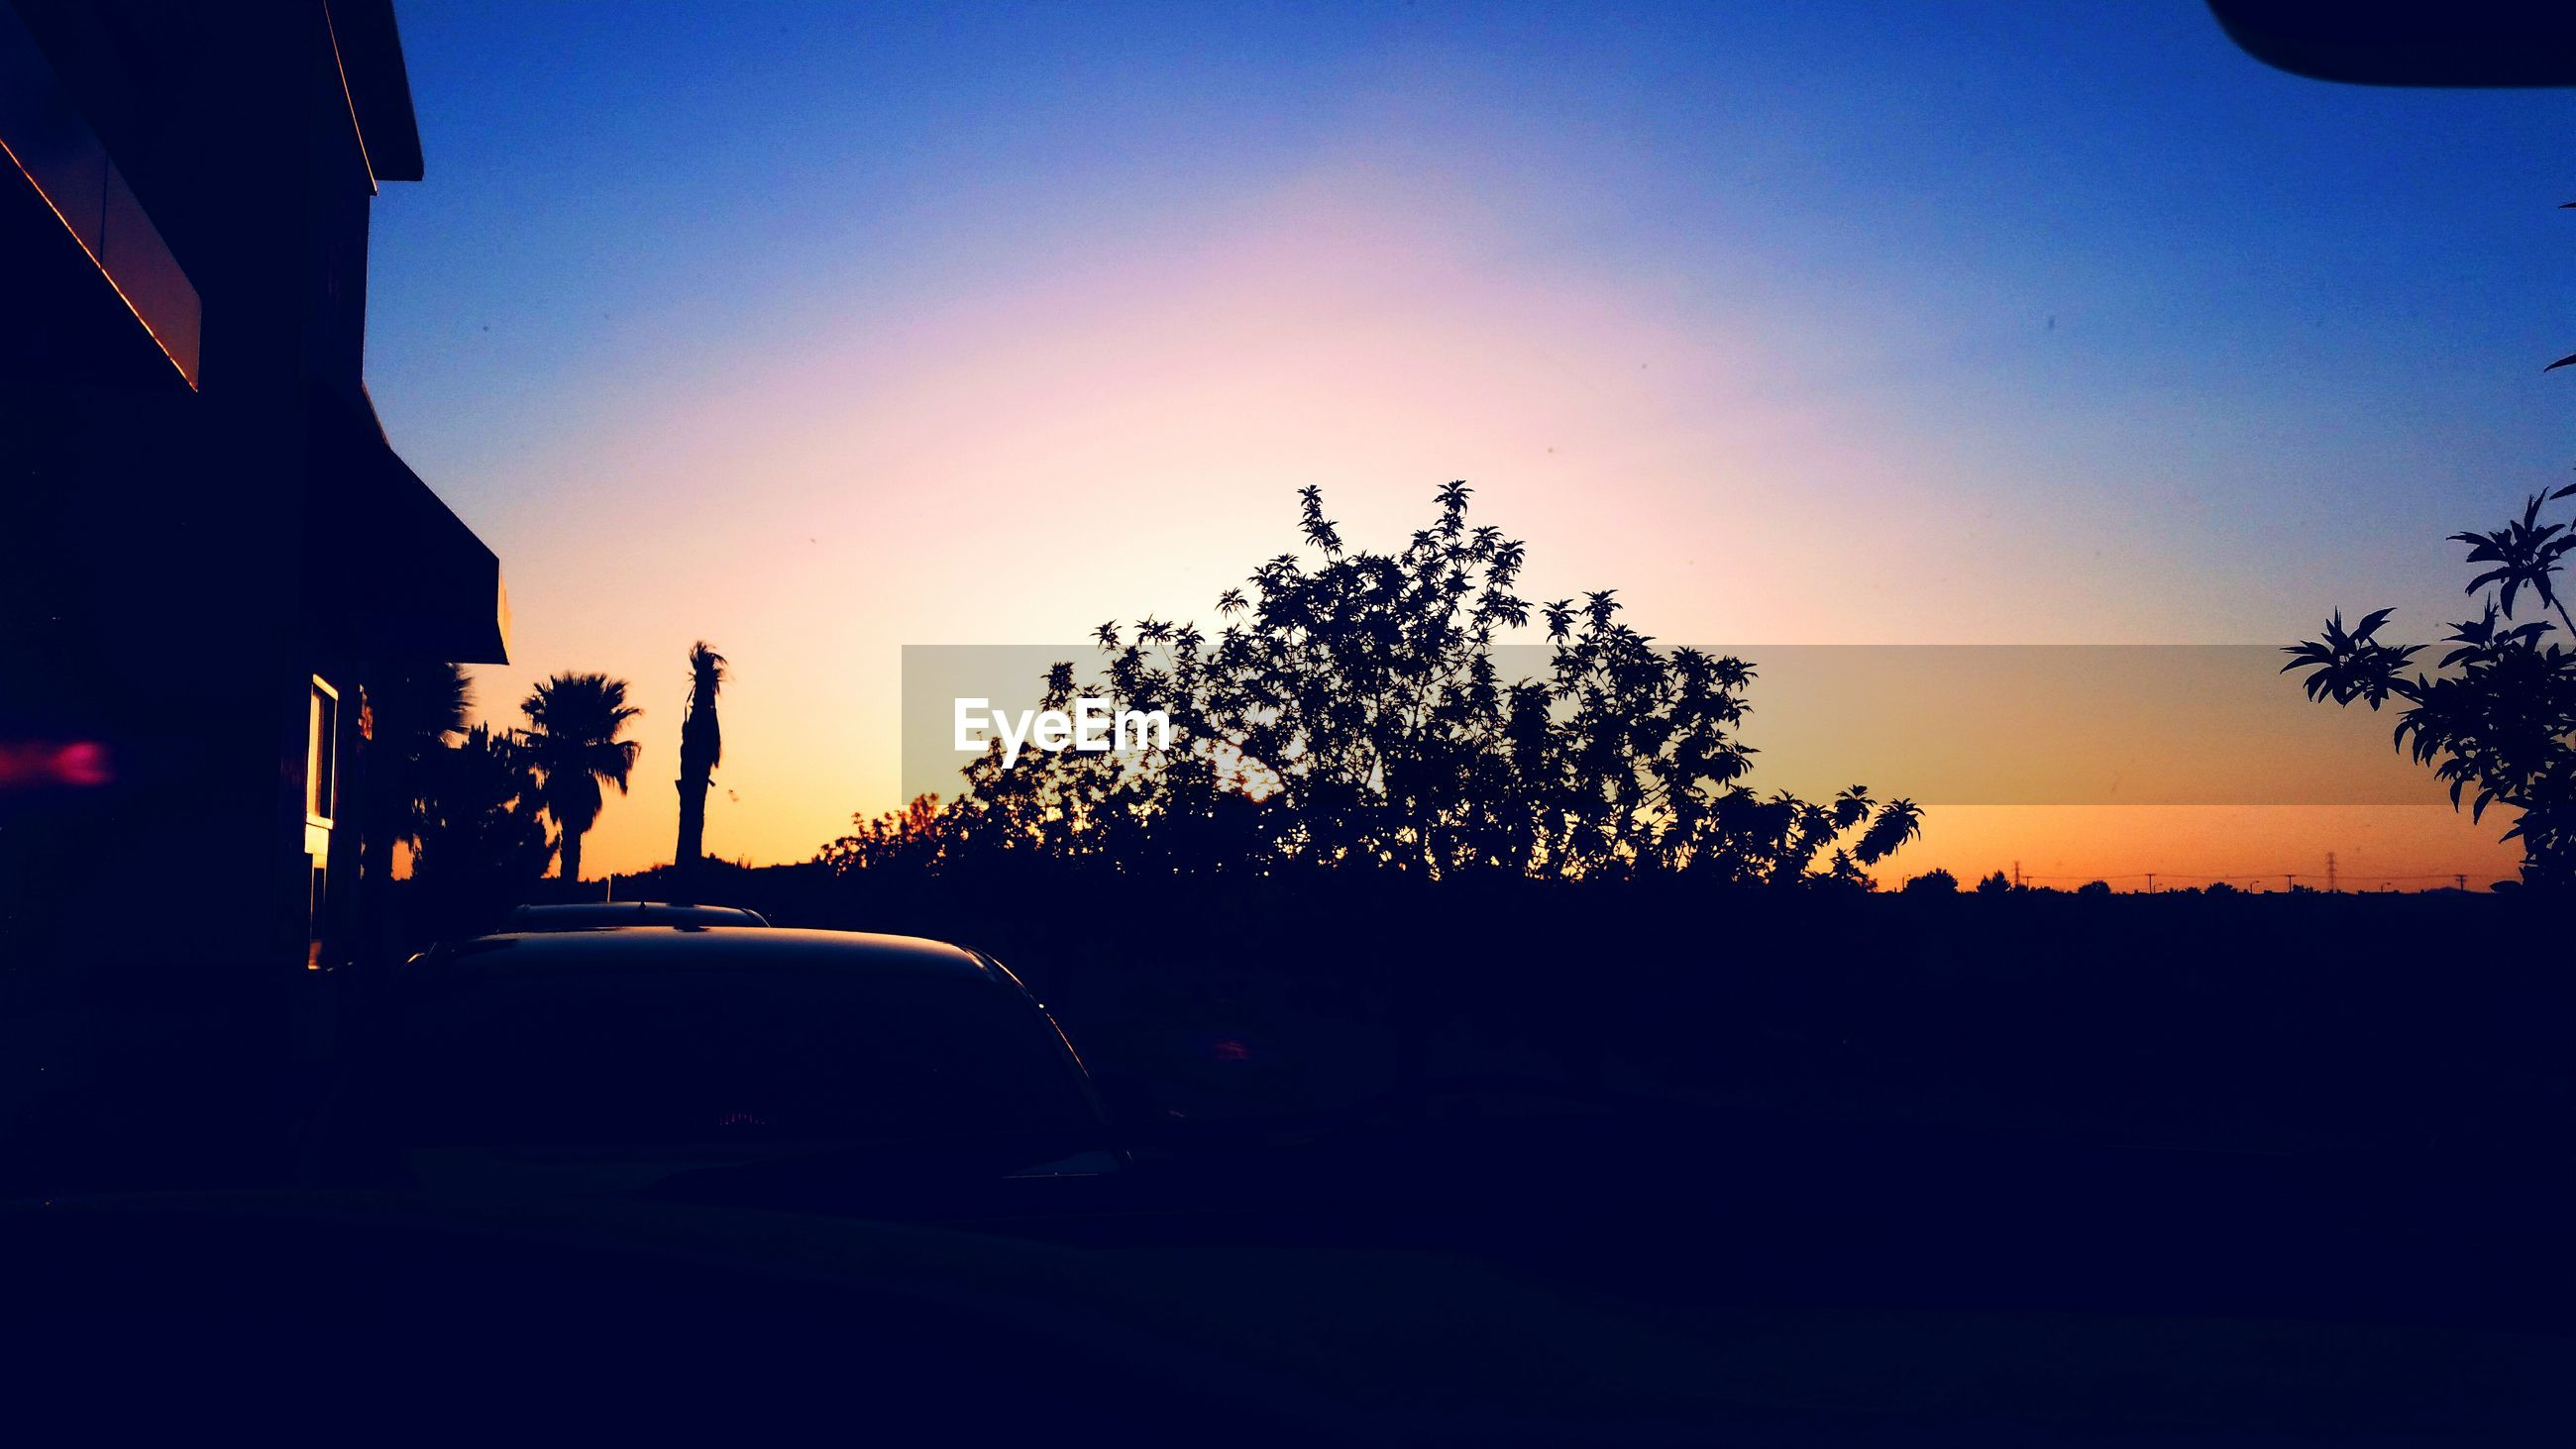 sunset, silhouette, tree, clear sky, transportation, land vehicle, copy space, car, mode of transport, orange color, sky, dusk, nature, dark, road, tranquility, beauty in nature, sun, blue, sunlight